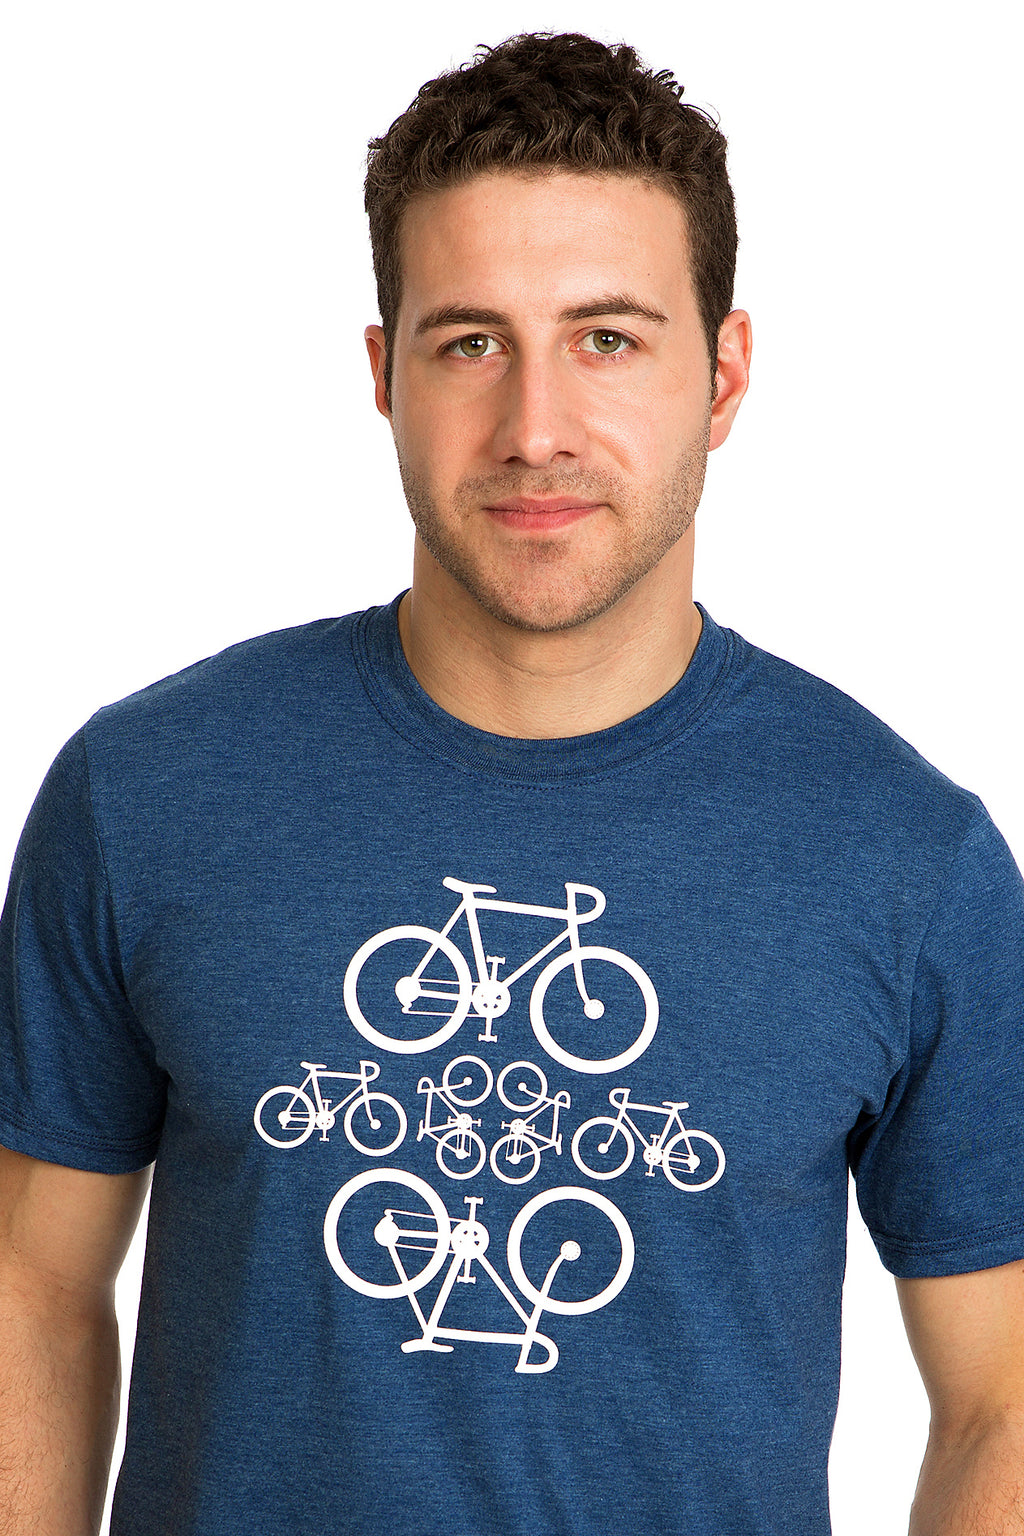 Bicycles Velo T-shirt Tshirt Tee Homme Mens Blue Bicycle bixi